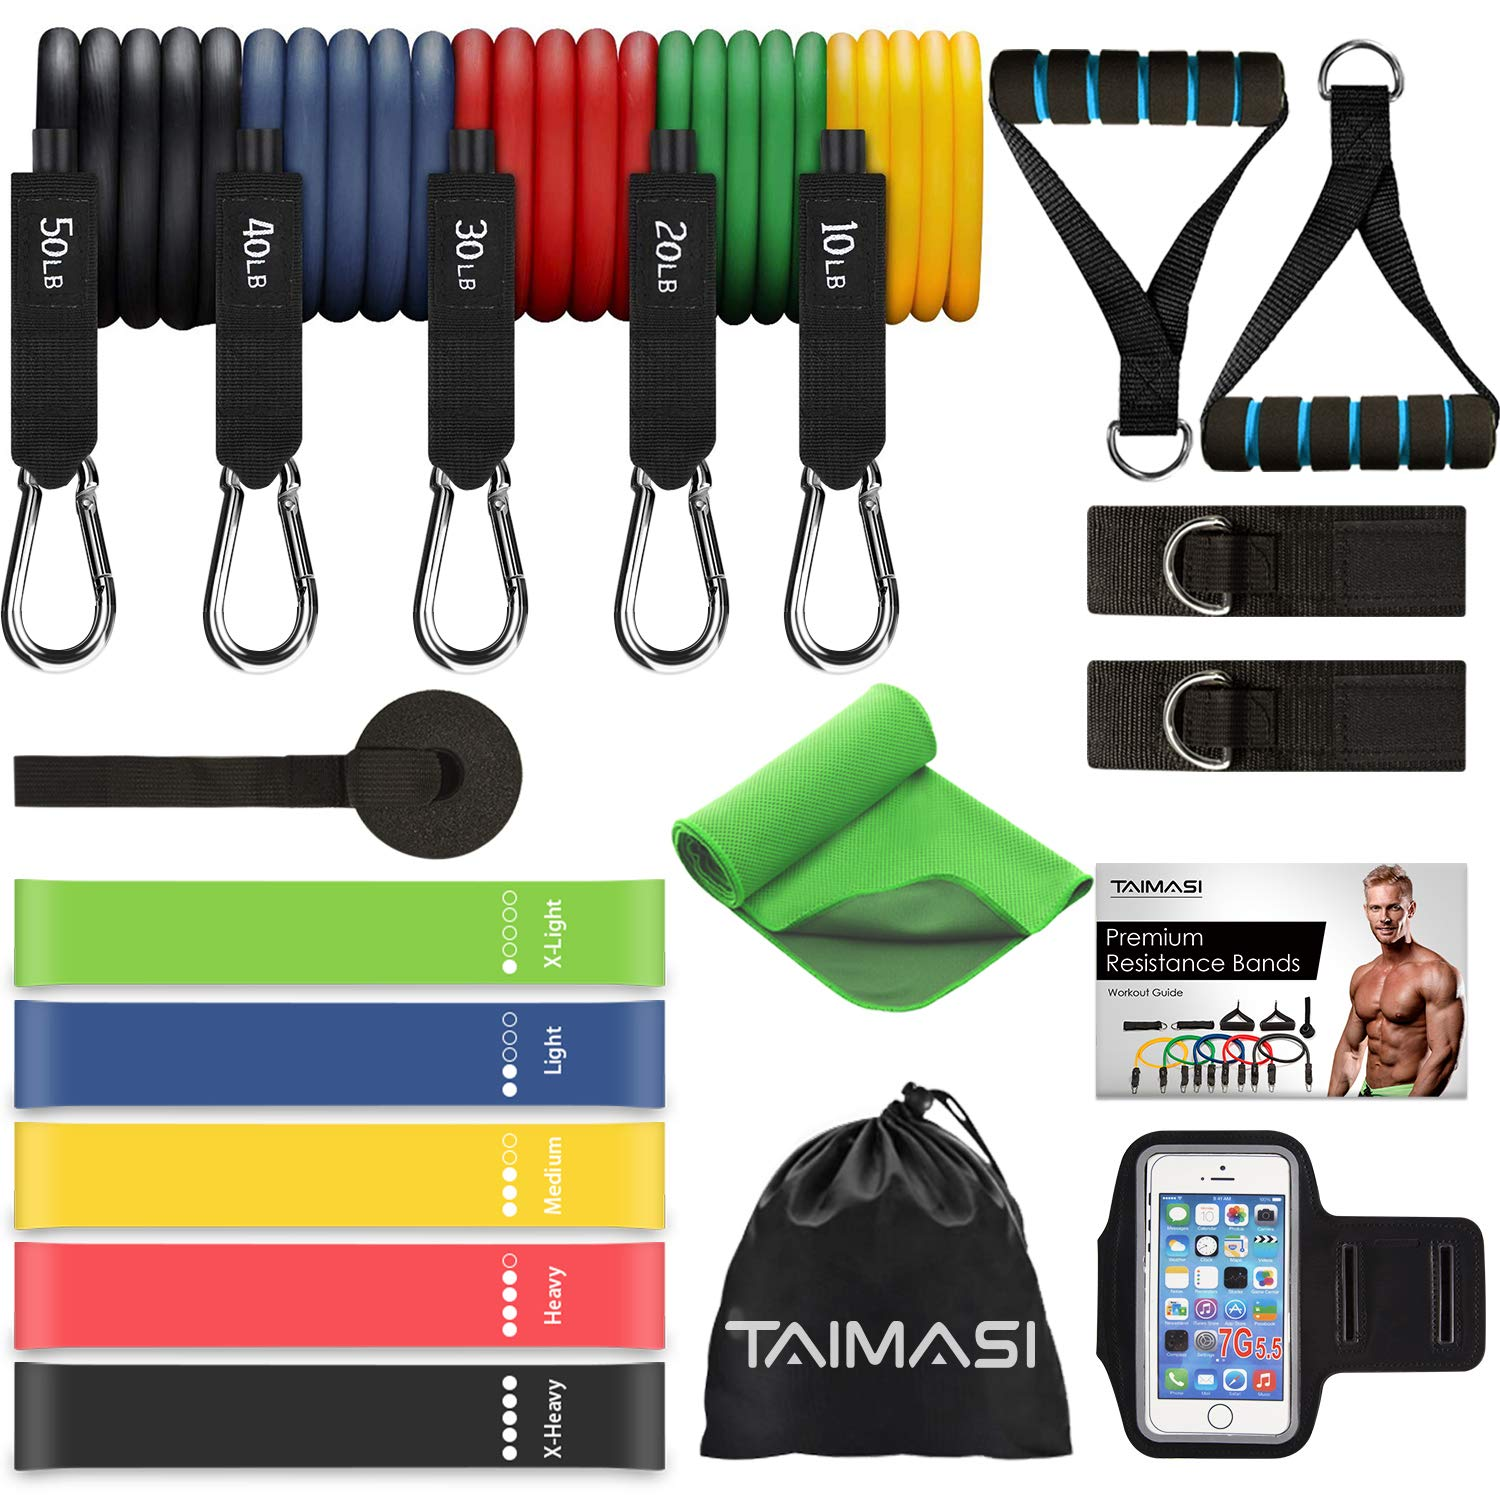 23PCS Resistance Bands Set Workout Bands, 5 Stackable Exercise Bands with Handles, 5 Resistance Loop Bands, Jump Rope…